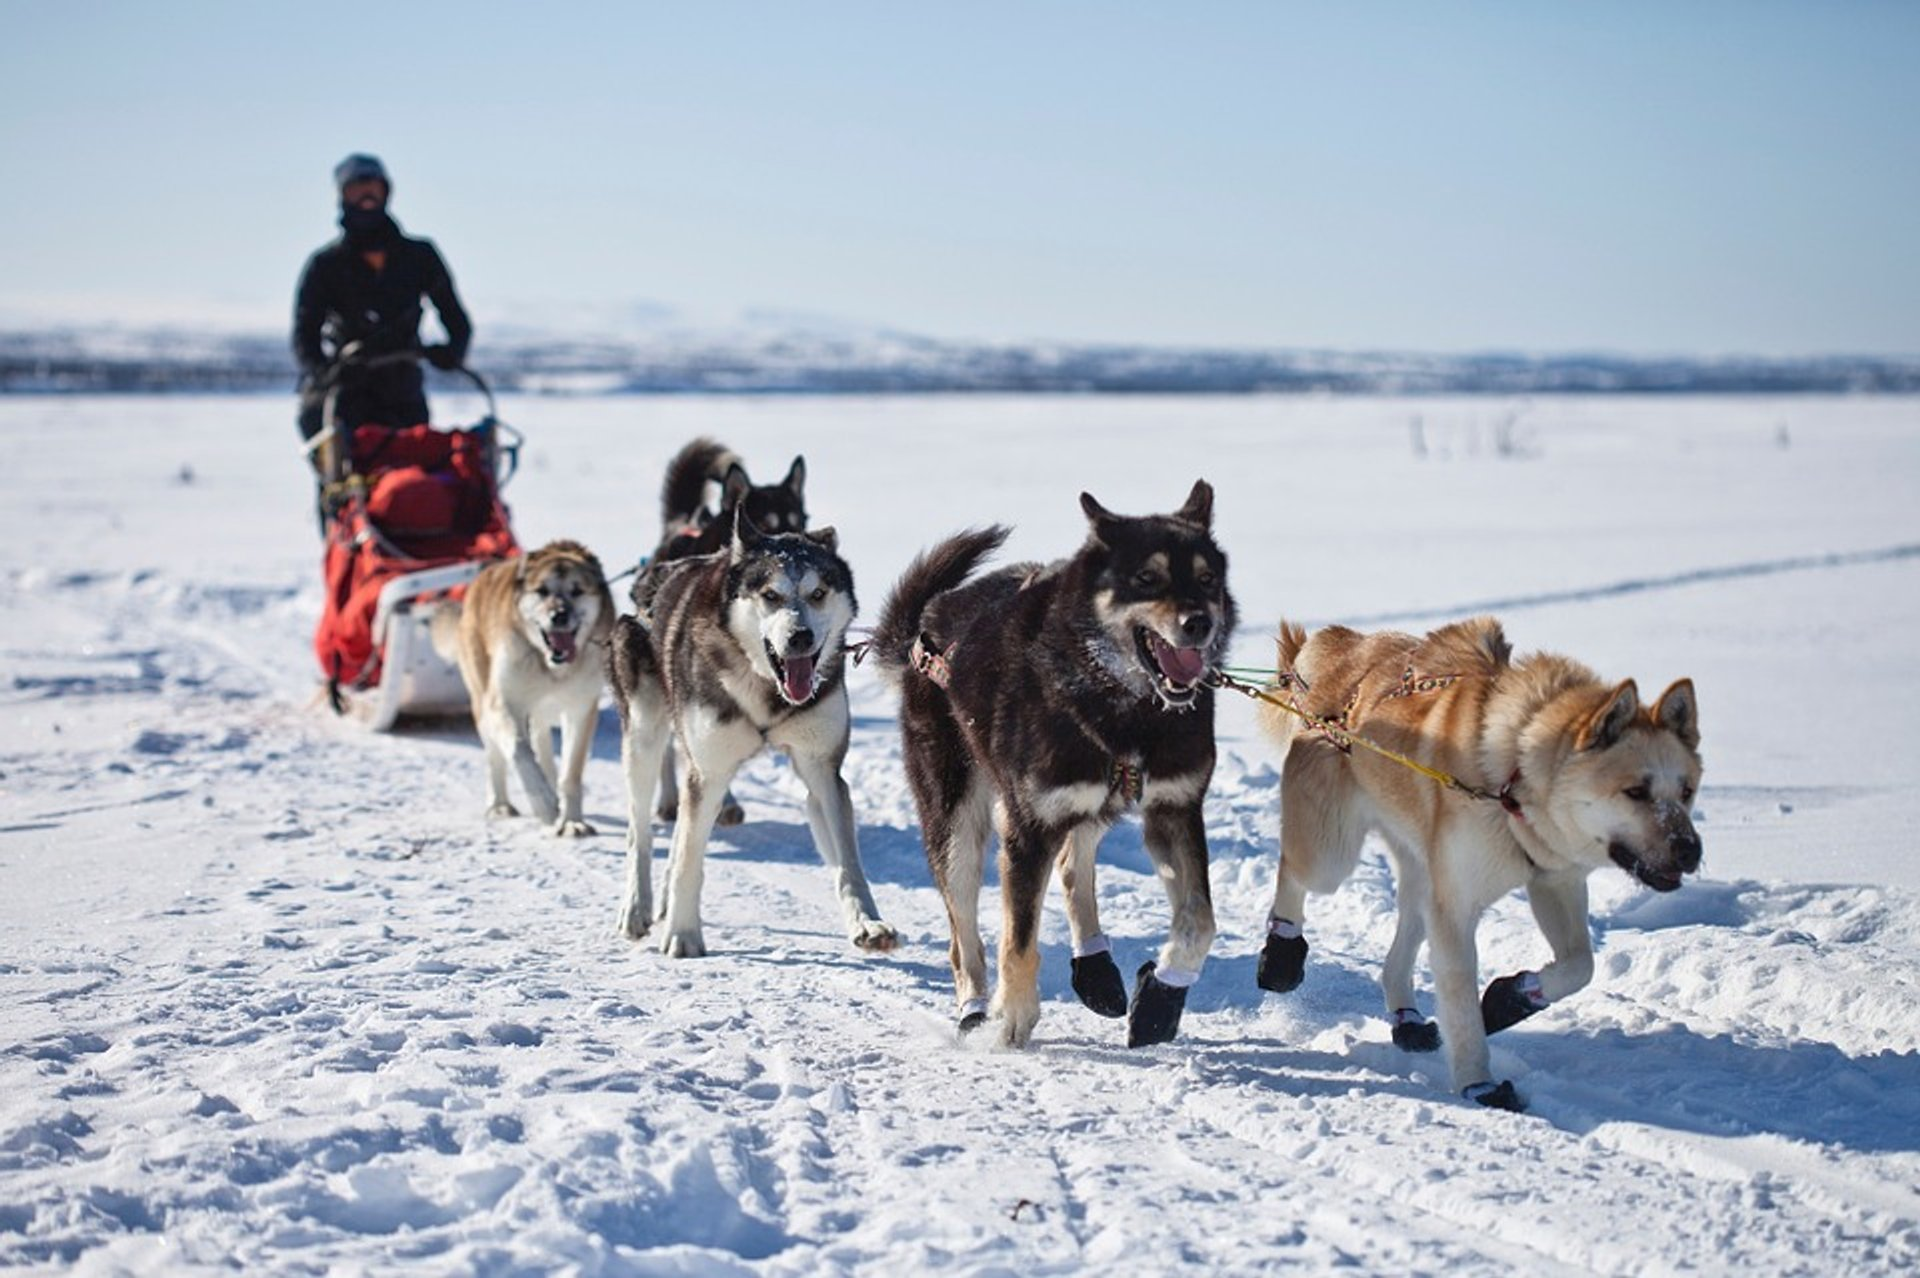 Dog Sledding in Alaska 2020 - Best Time